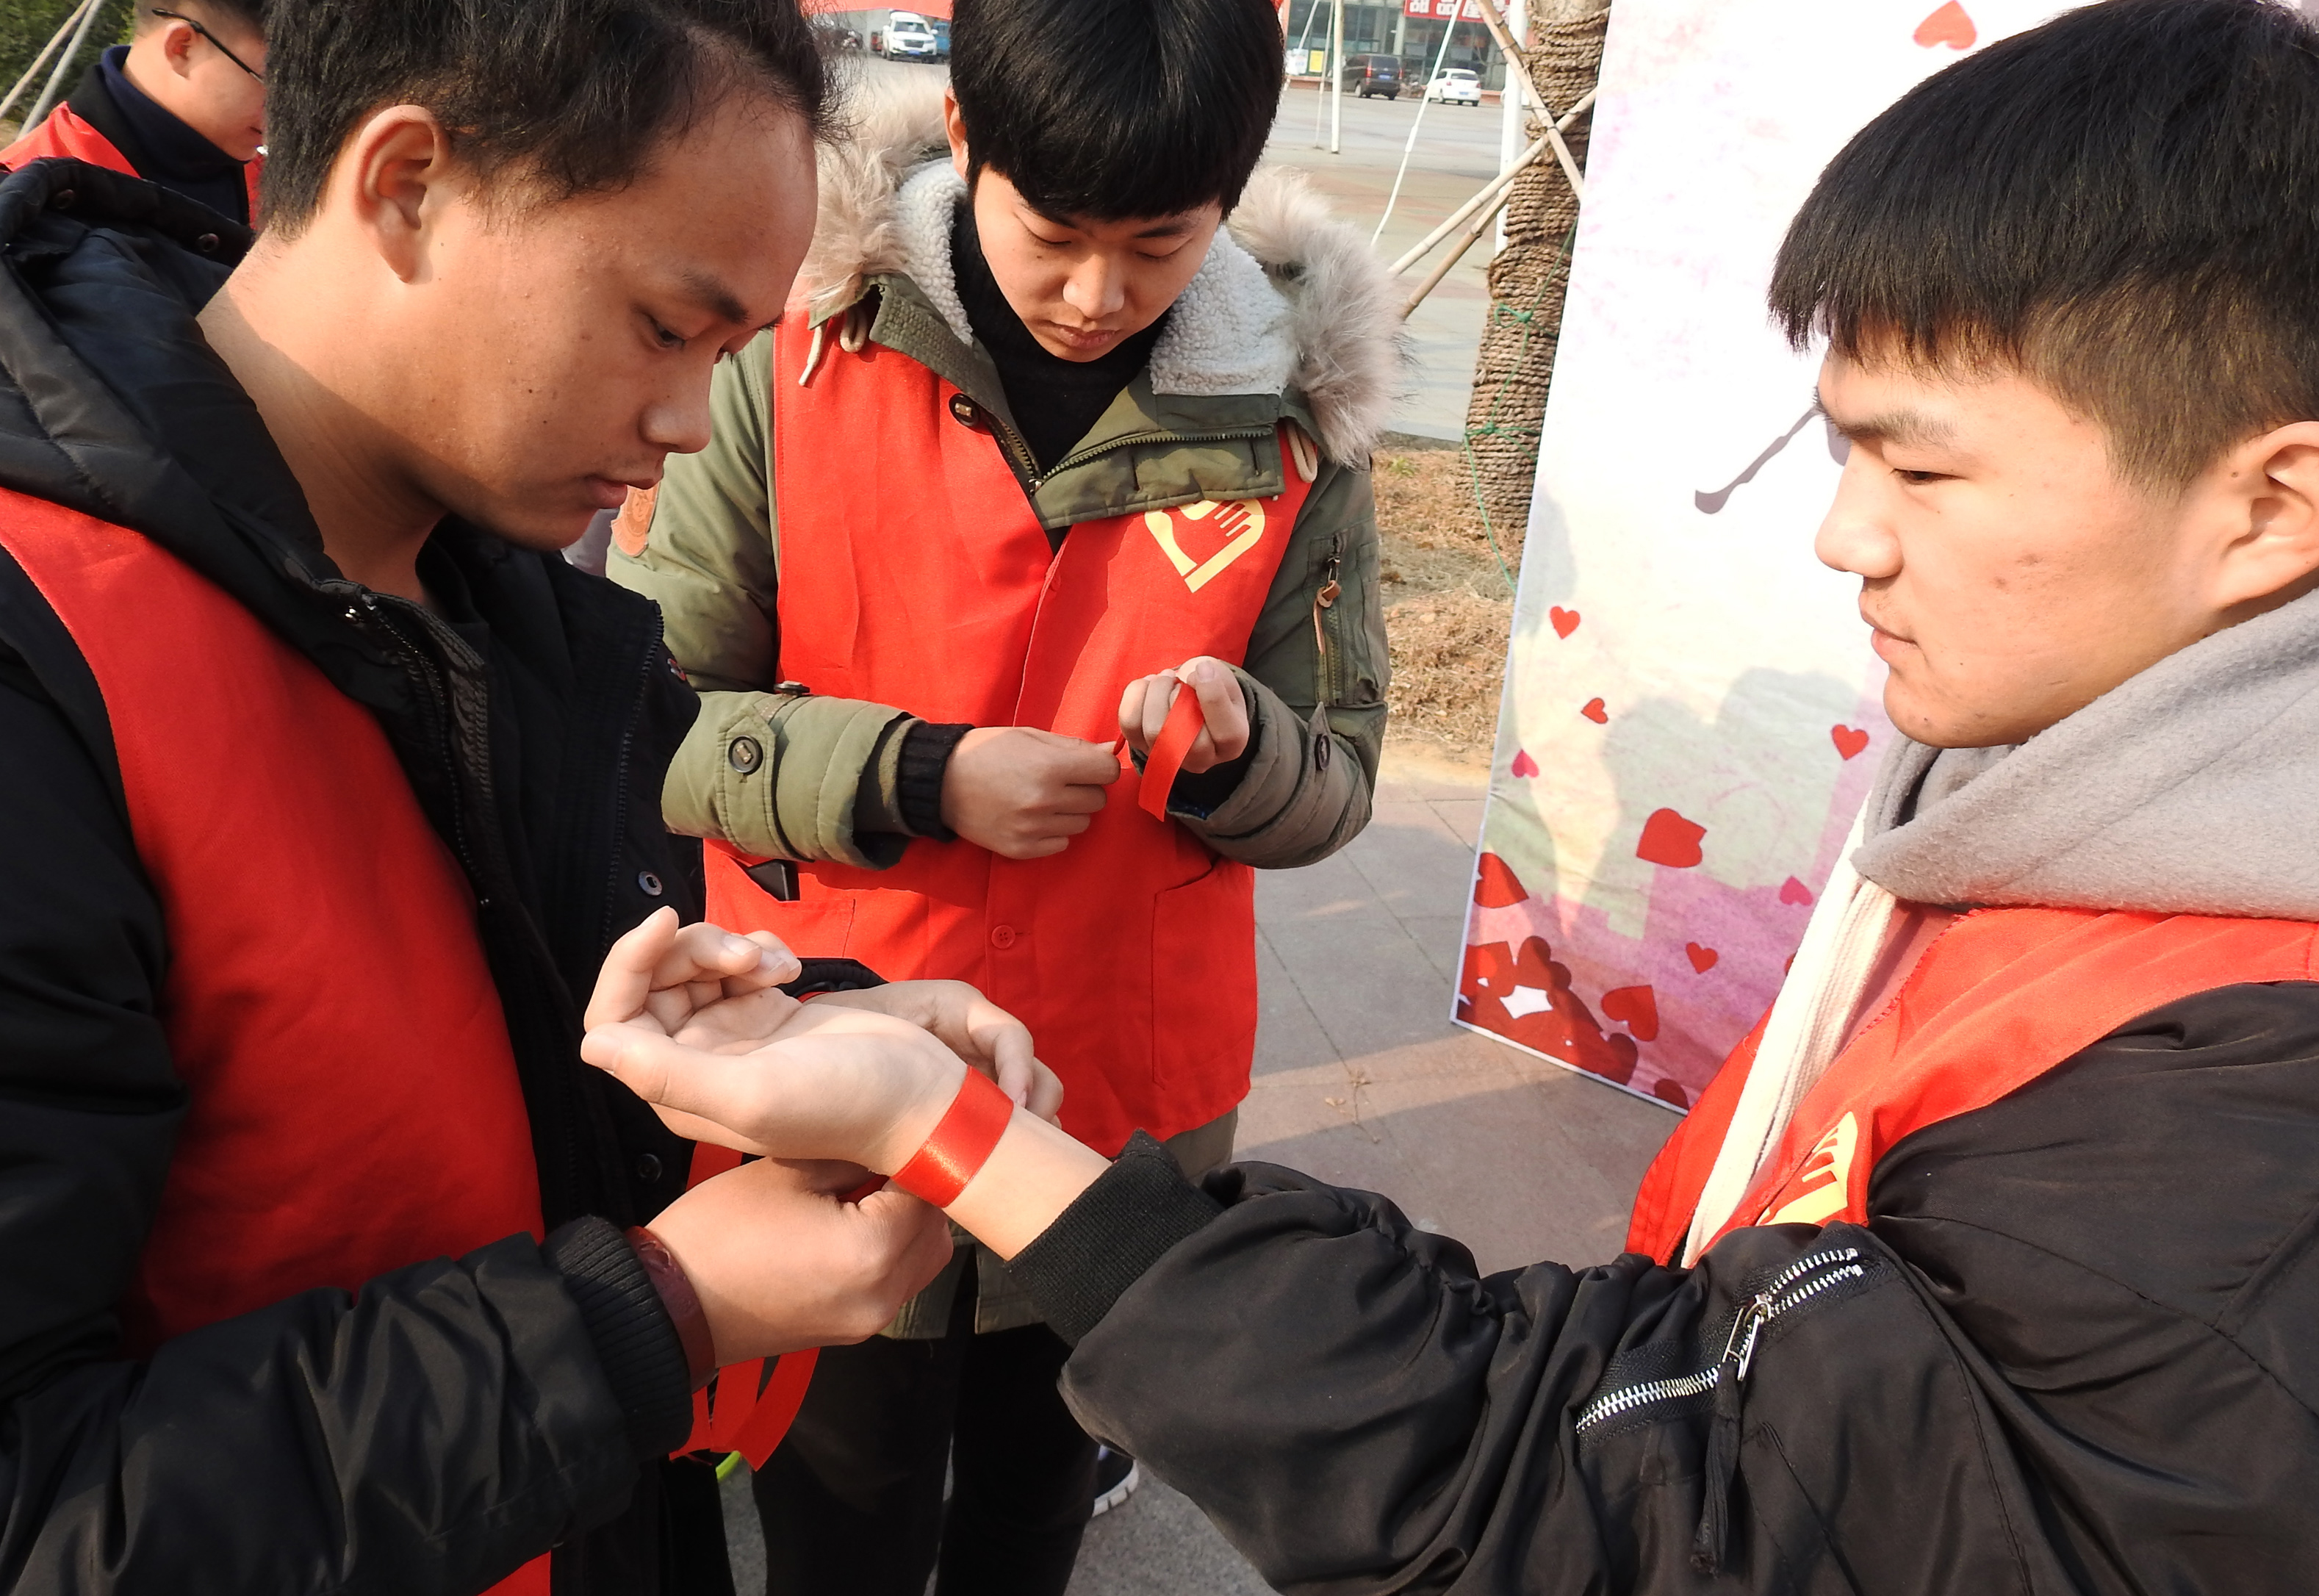 A university student ties a red ribbon on another's wrist to mark World AIDS Day in Lianyungang in China's eastern Jiangsu province on December 1, 2017. AFP/Getty Images